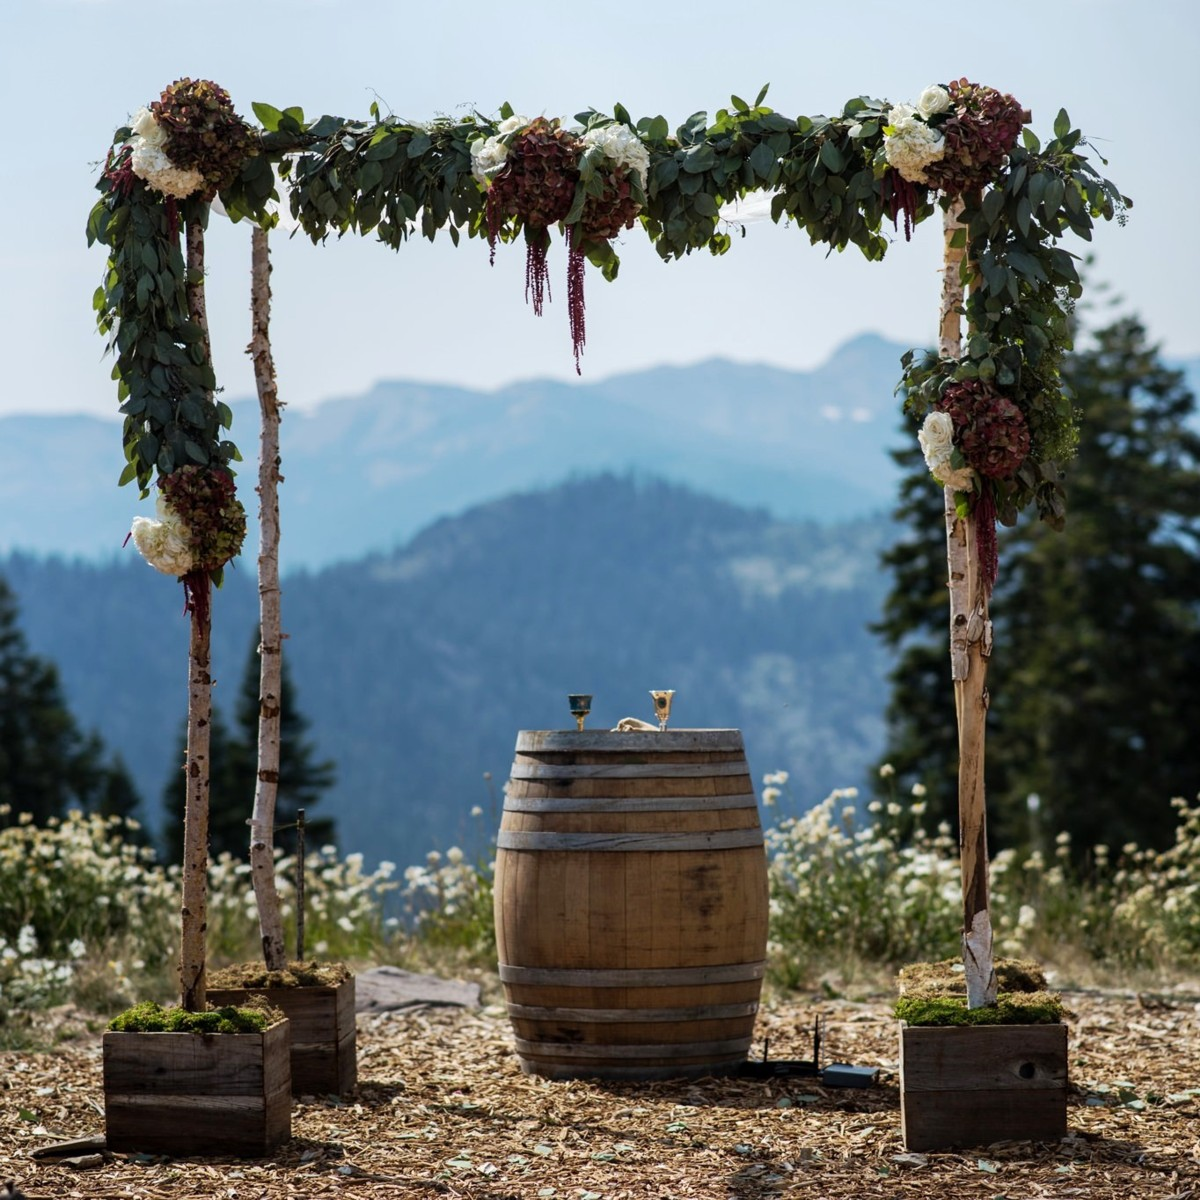 Northstar California Lake Tahoe wedding chuppah